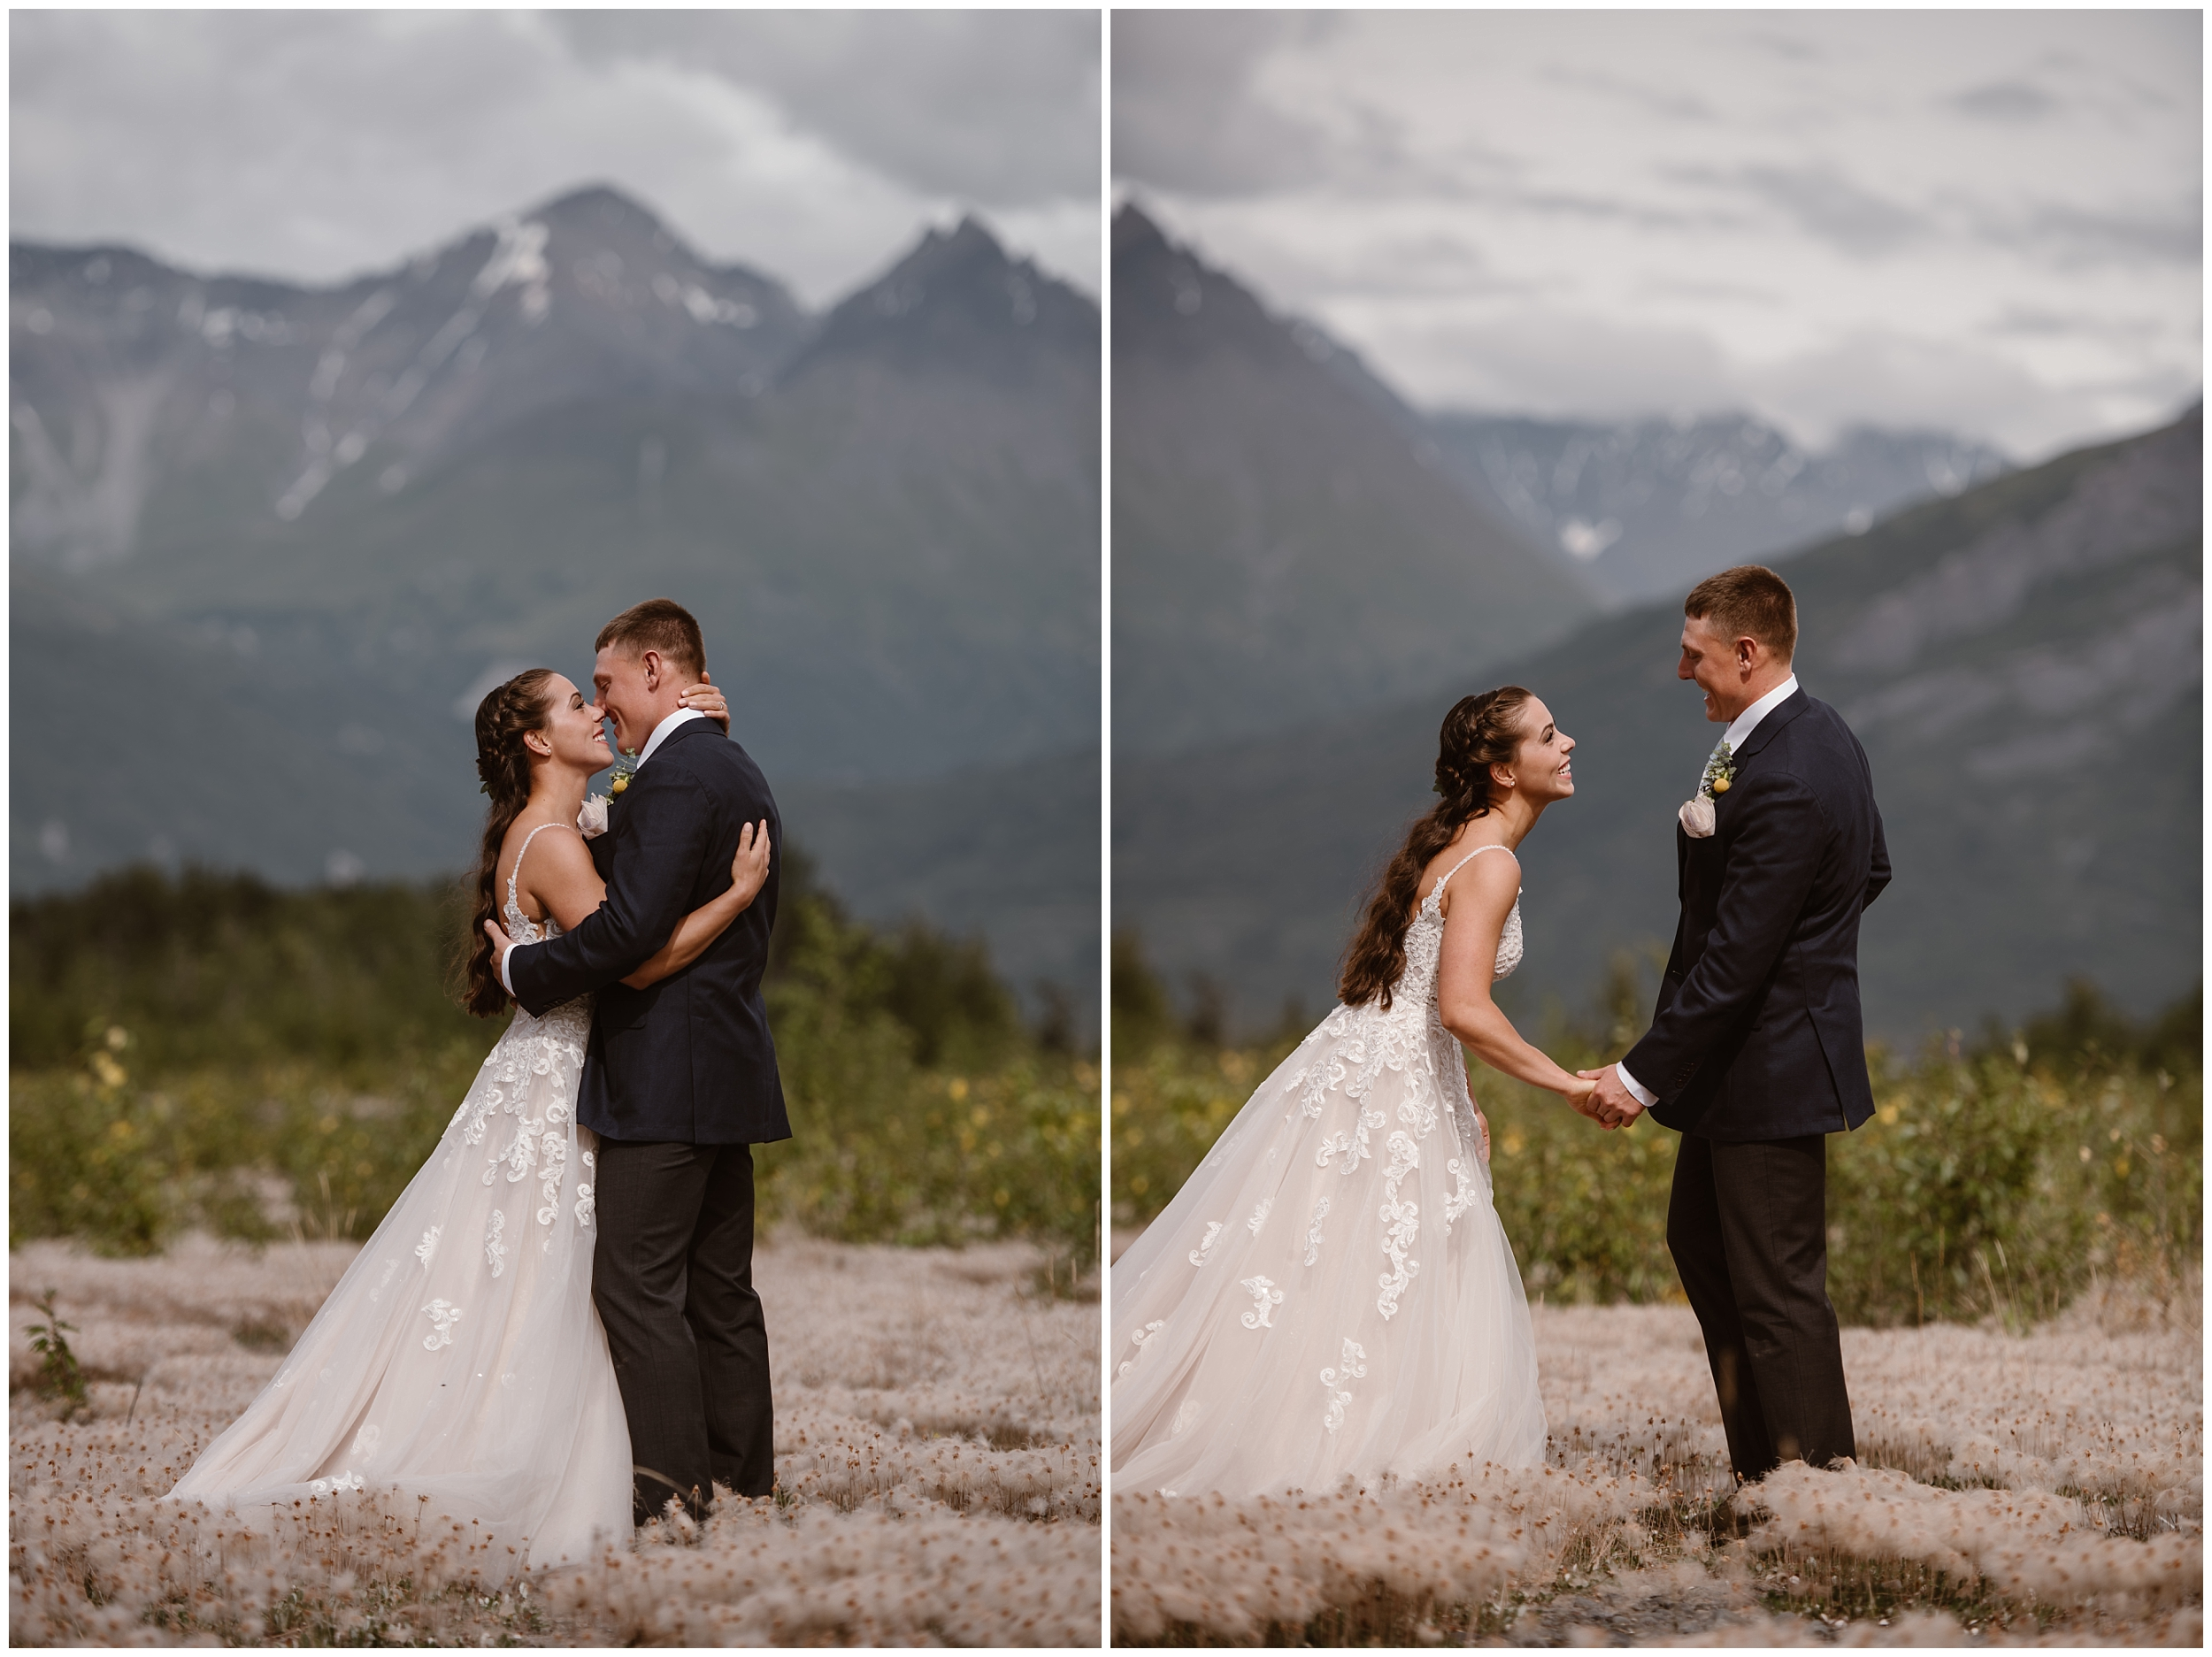 This side-by-side image shows two photos of Jordyn and Connor when they see each other after their first look. In the left image, captured by Alaska destination wedding photographer Adventure Instead, the bride and groom embrace in the presence of epic mountain peaks and a flowered meadow. In the second photo, Jordyn and Connor hold hands and gaze into each other's eyes before their Alaska destination wedding.